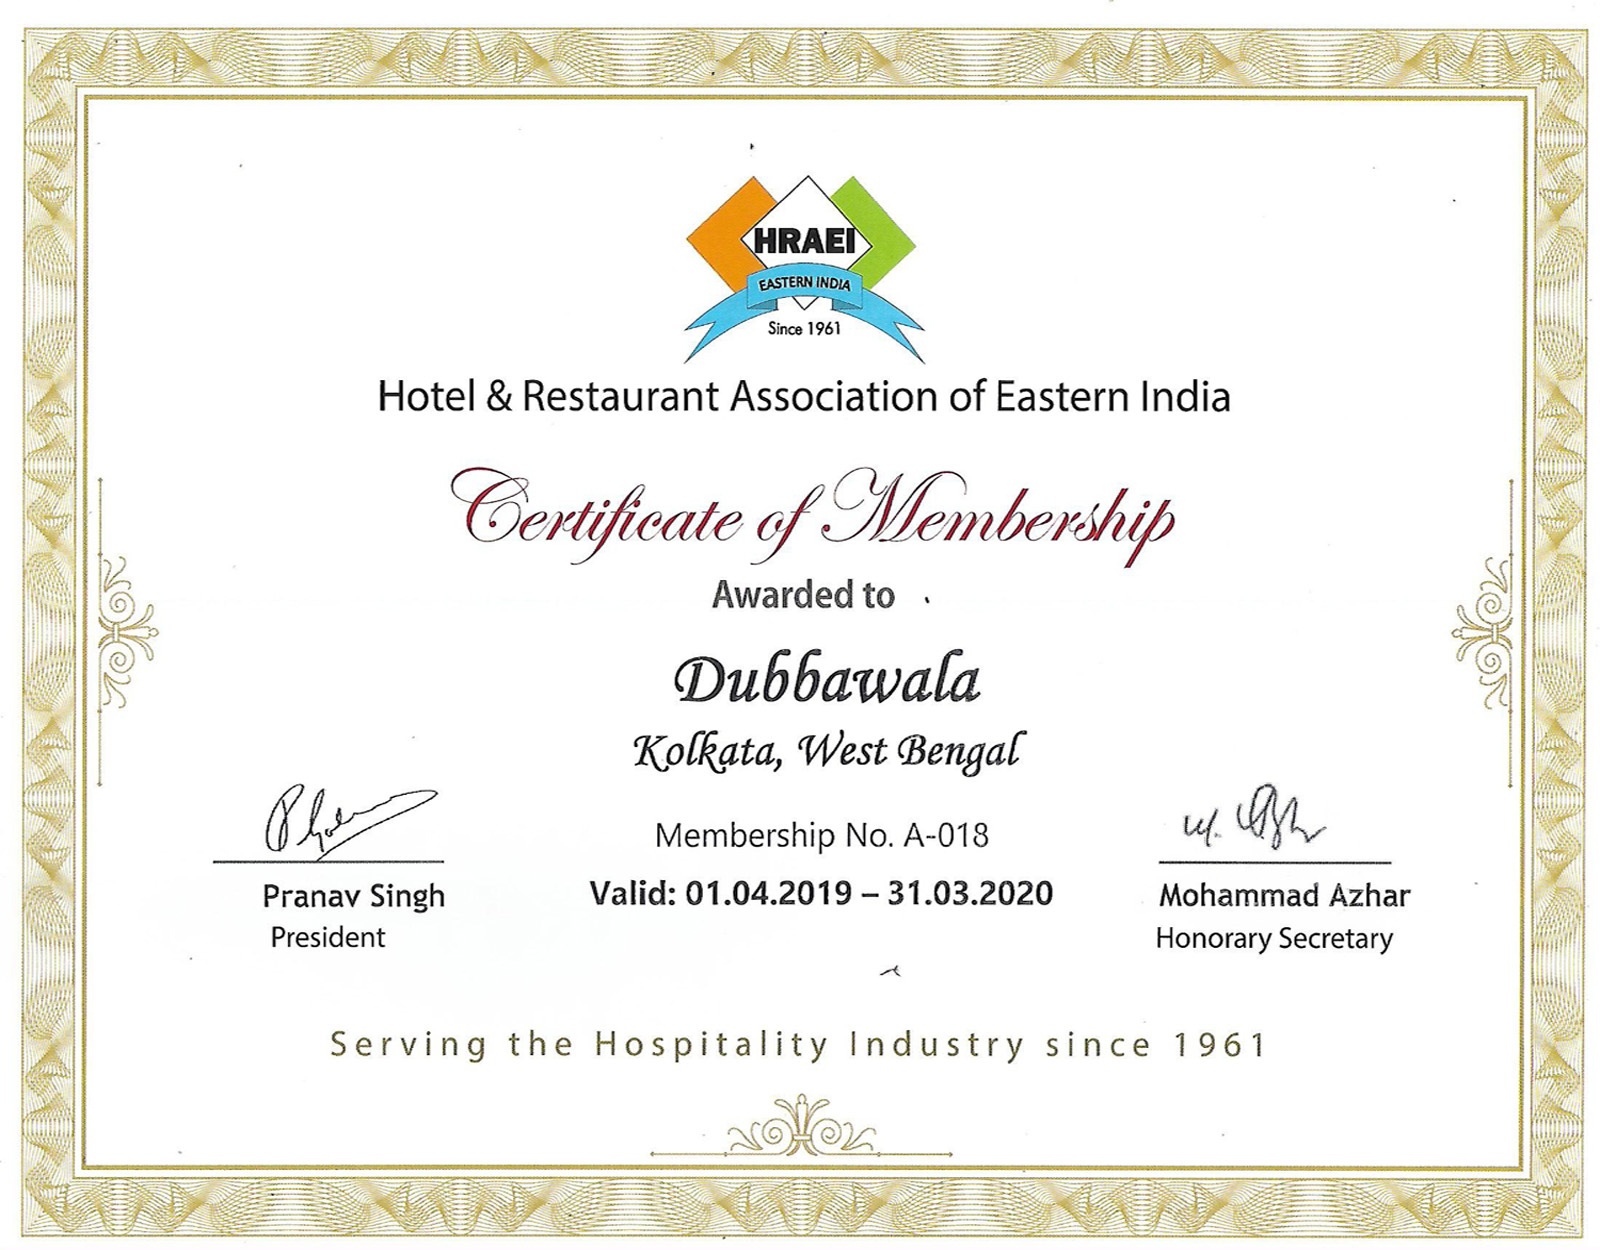 A Member Of Hotel & Restaurant Association Of Eastern India